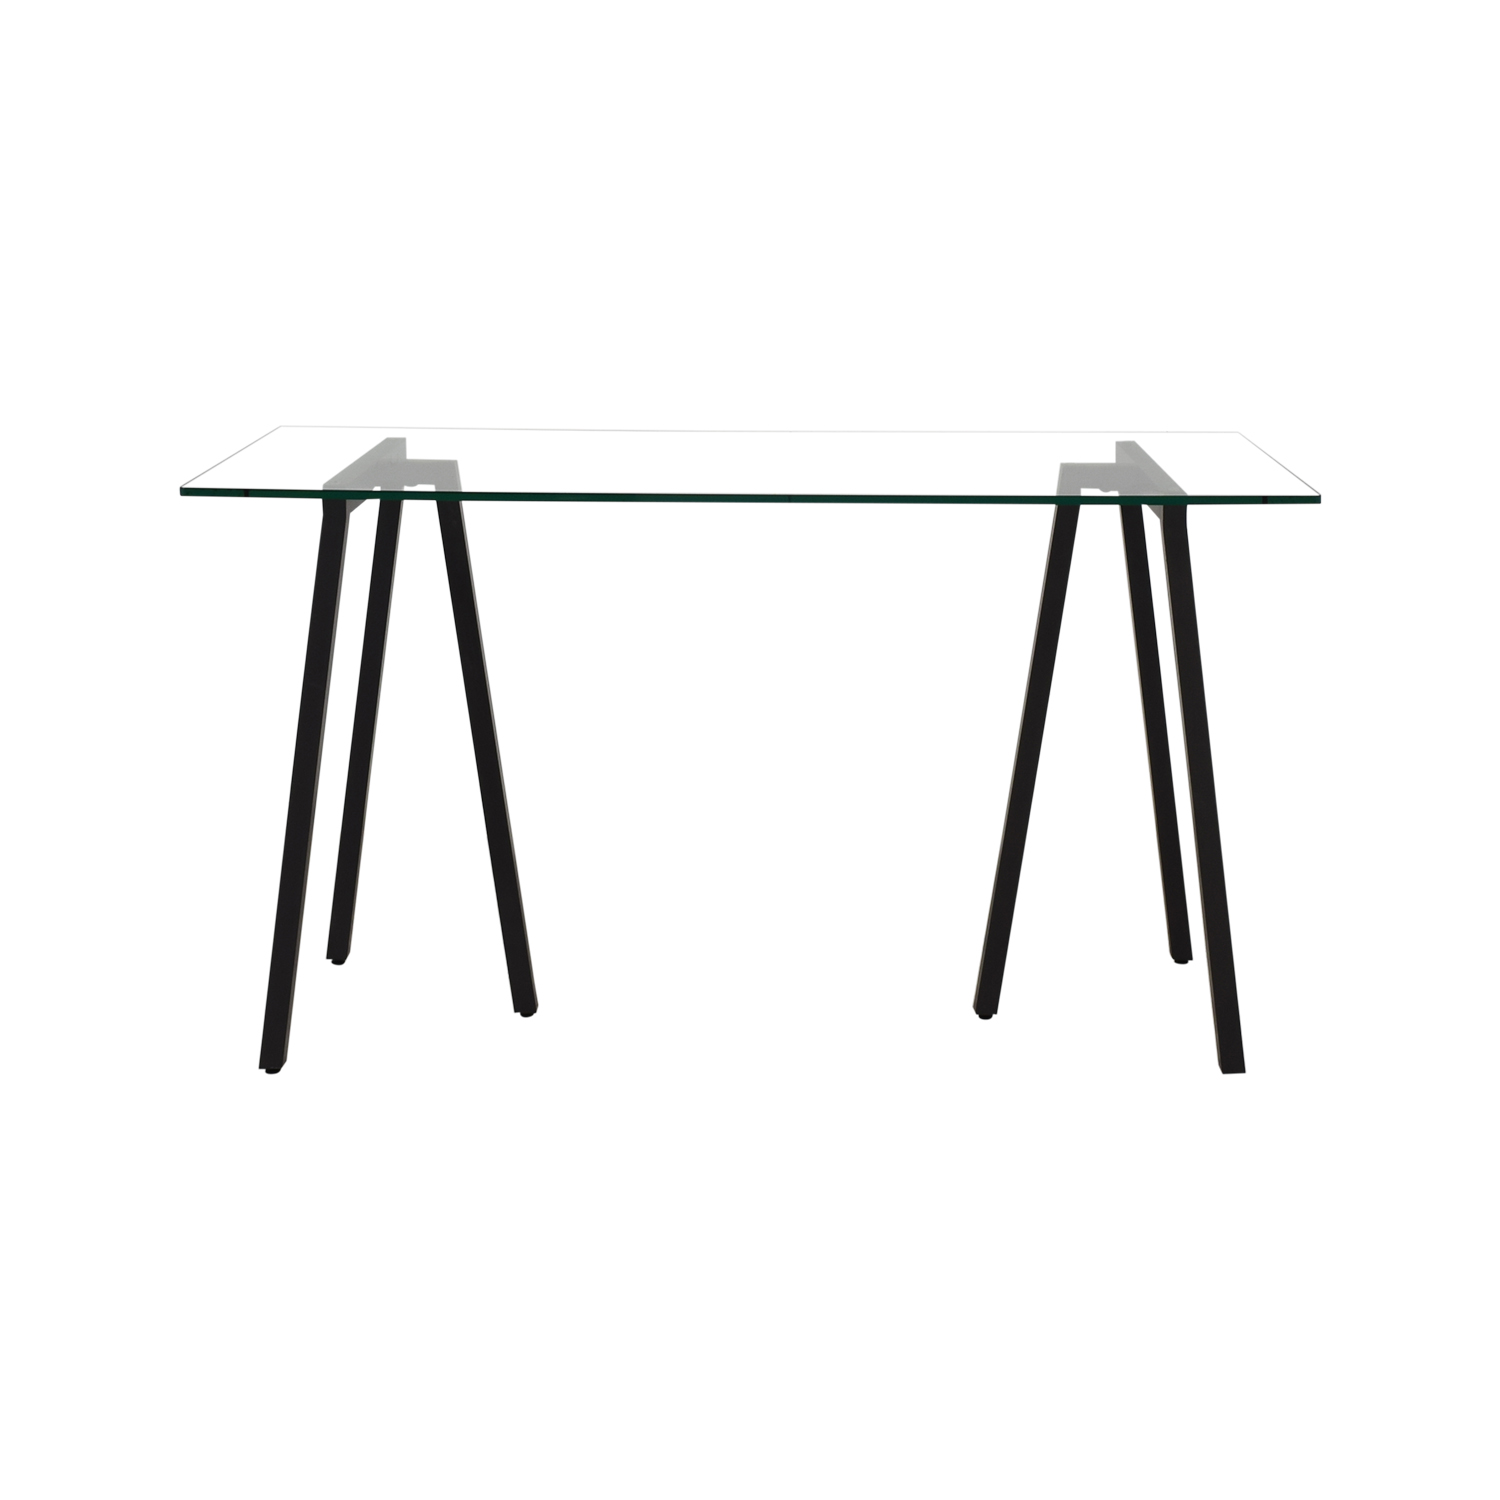 West Elm West Elm Glass Desk for sale